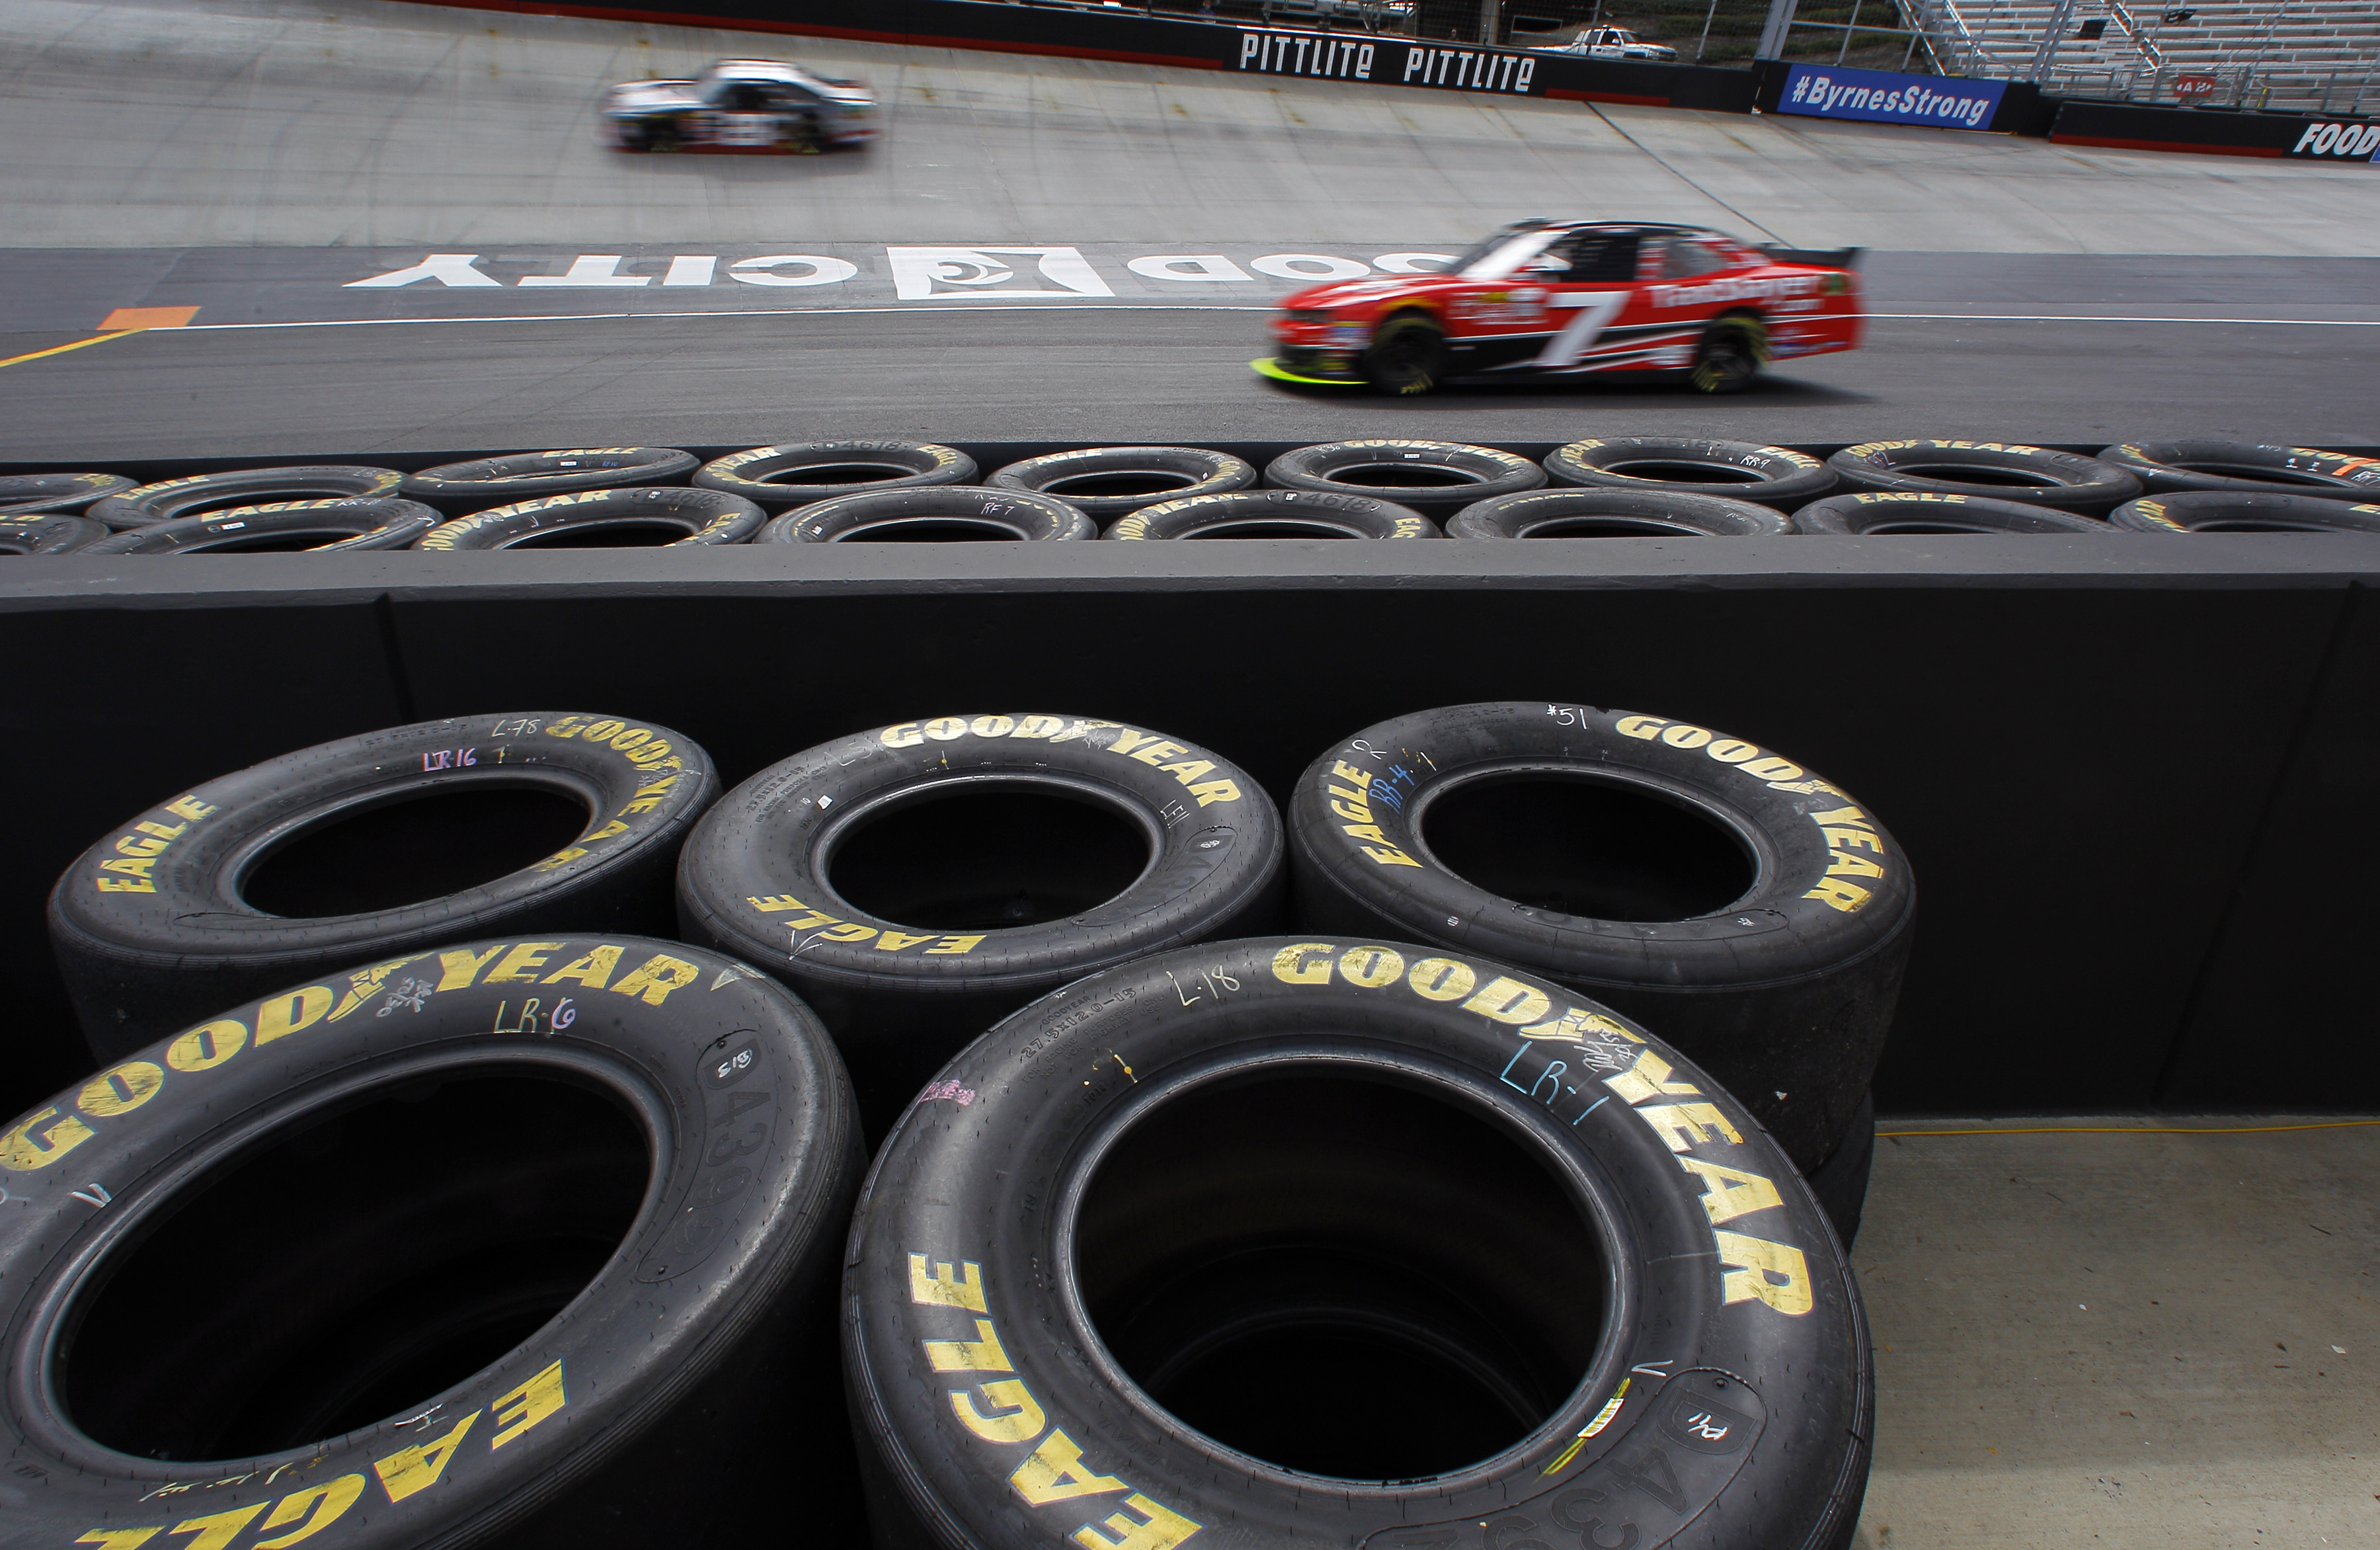 RCR takes Newman penalties to final appeals officer